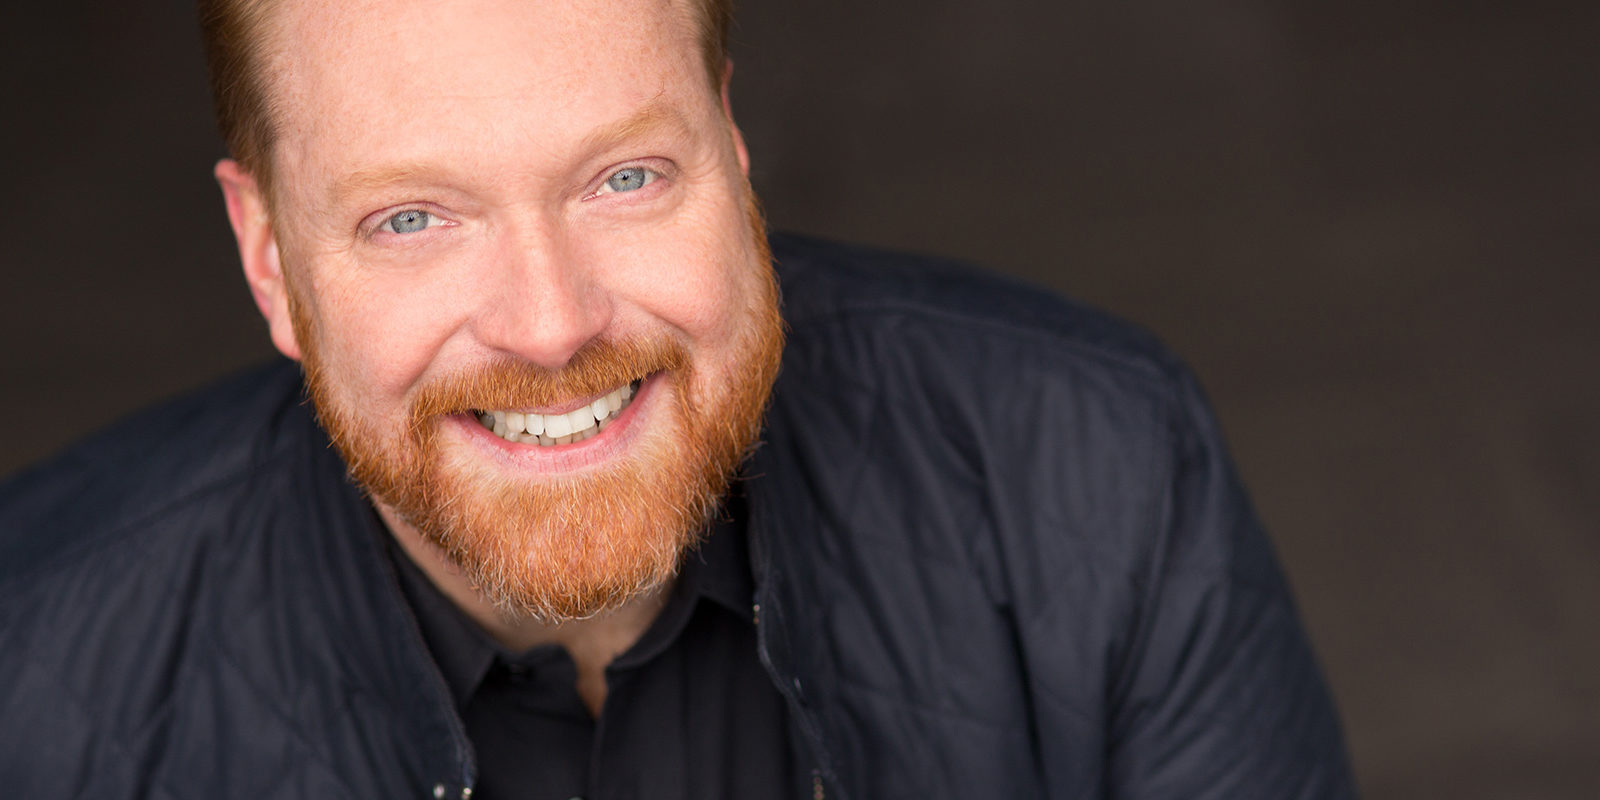 Storytelling Podcast Kevin Allison RISK